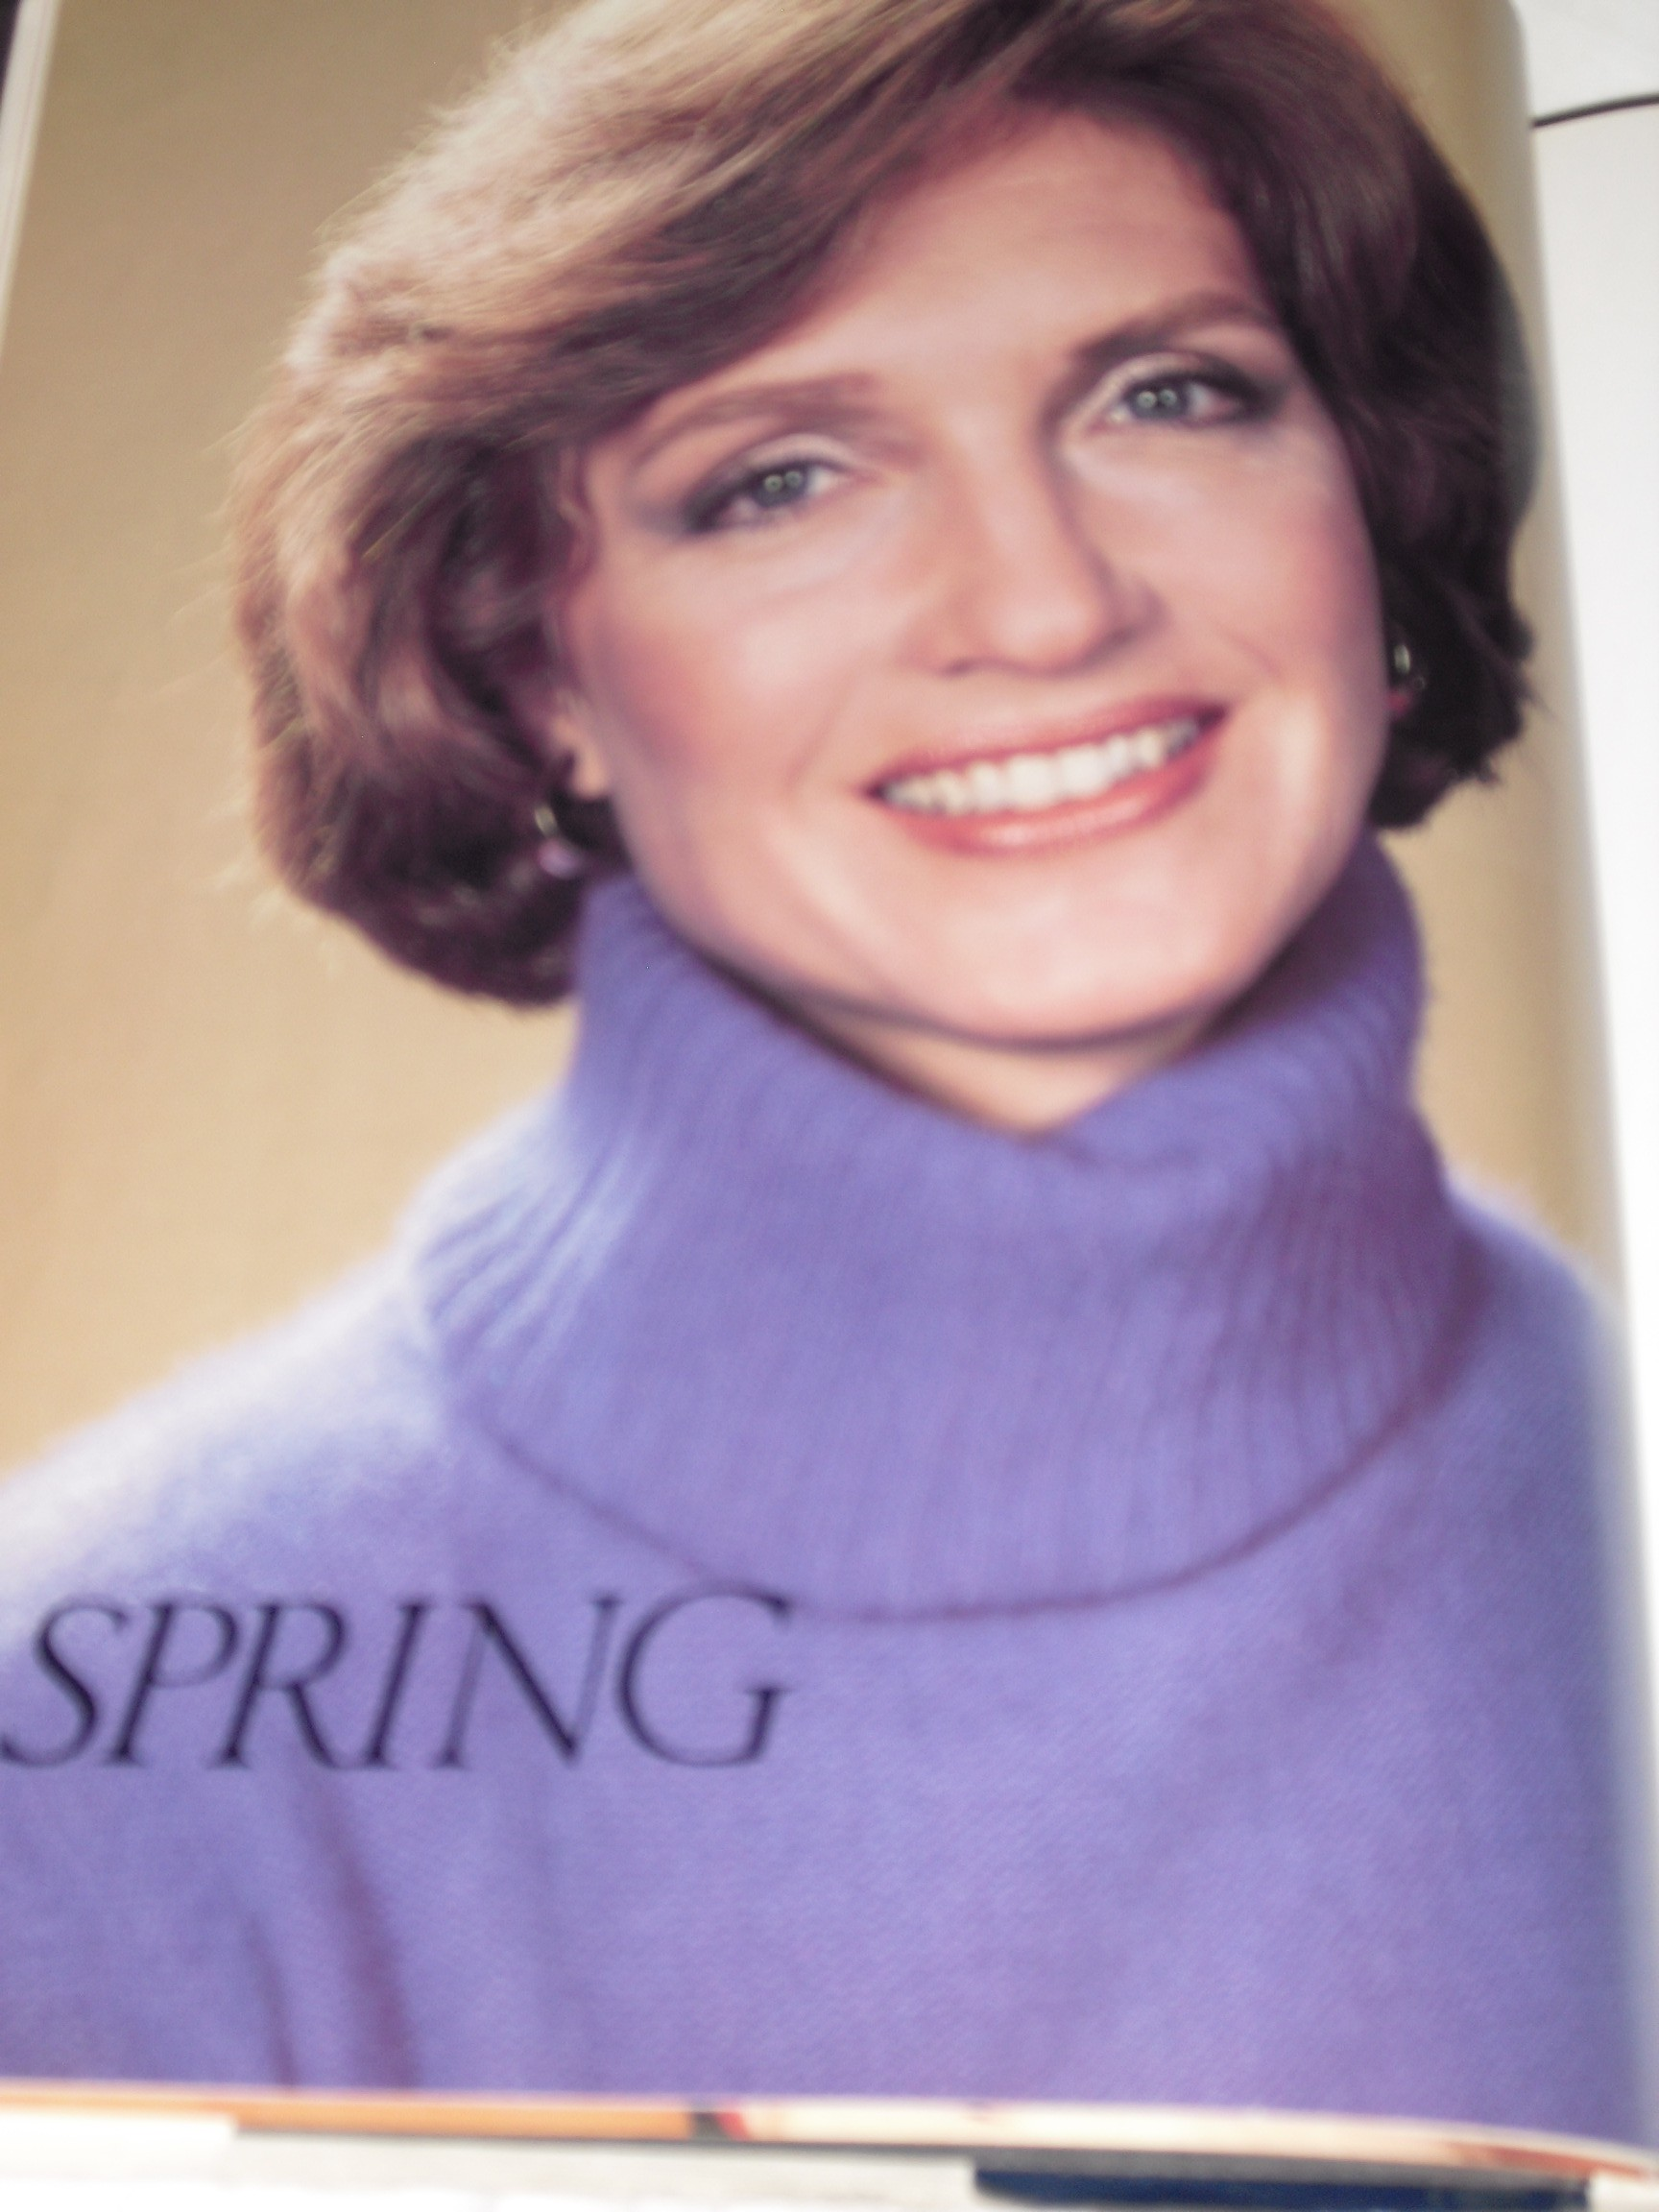 Picture of woman in purple turtleneck with 80's hair / makeup